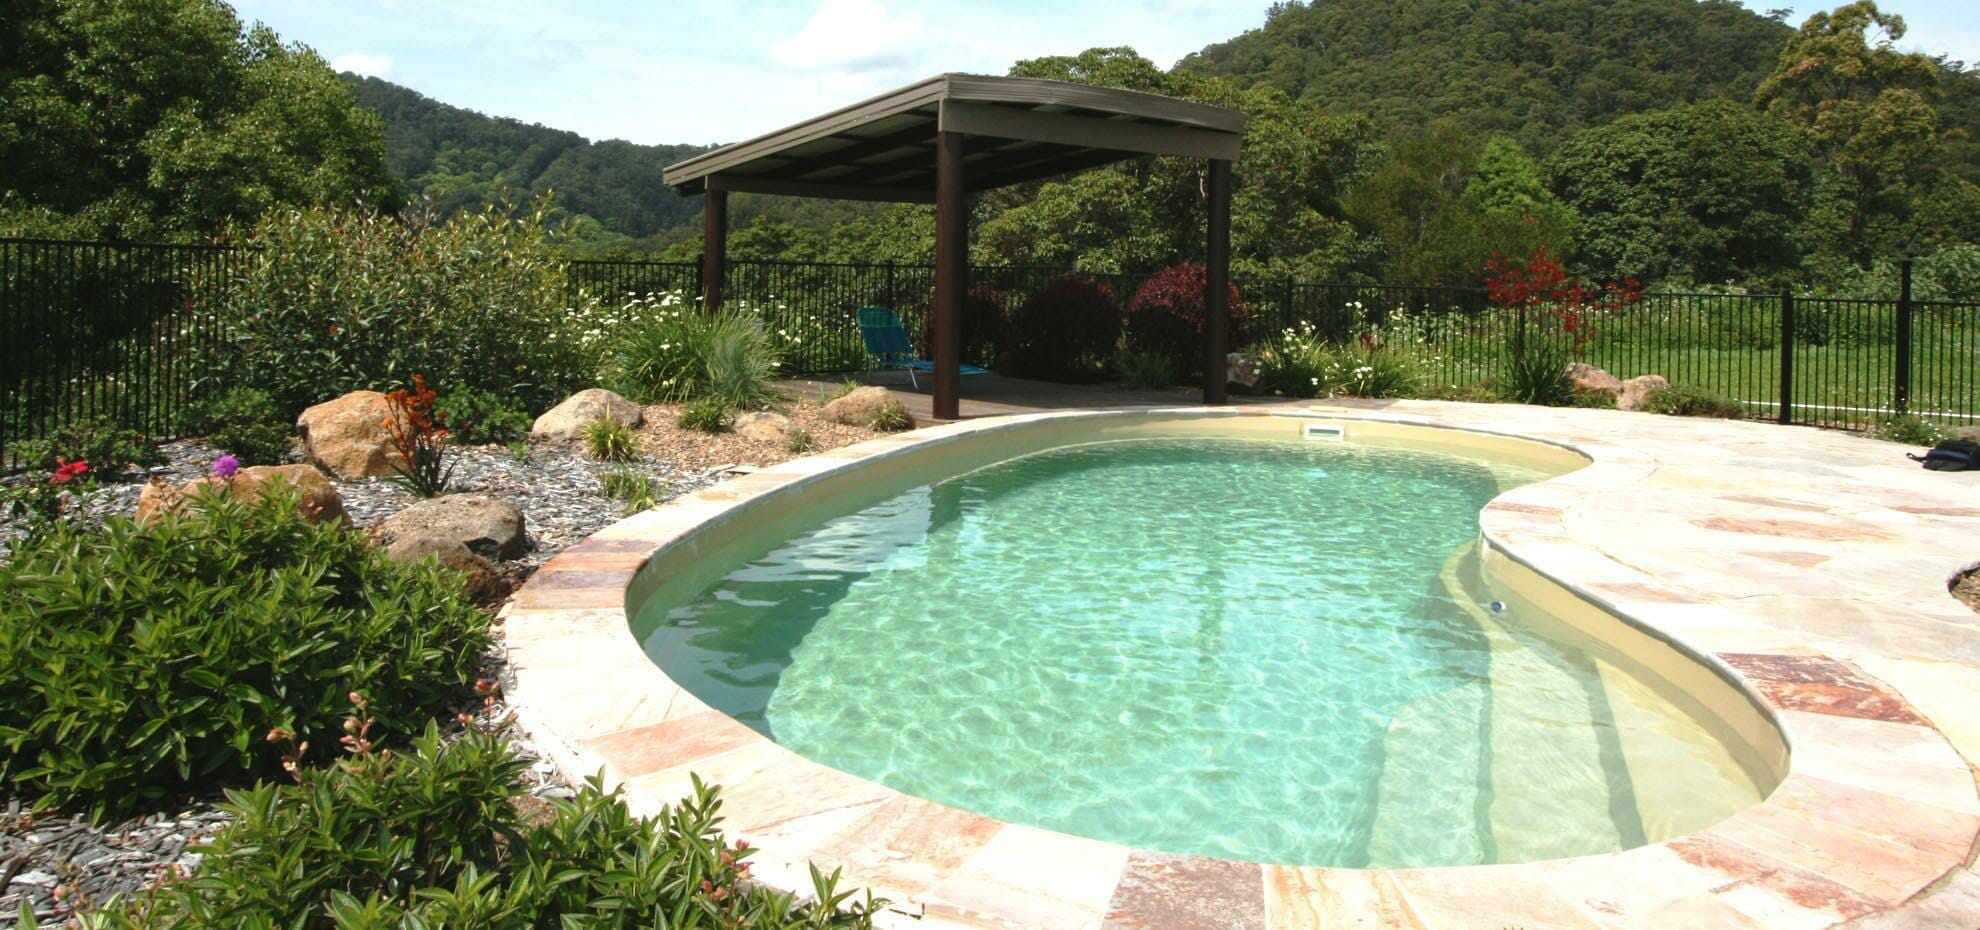 Tuscany Fiberglass Pool with pergola and coping